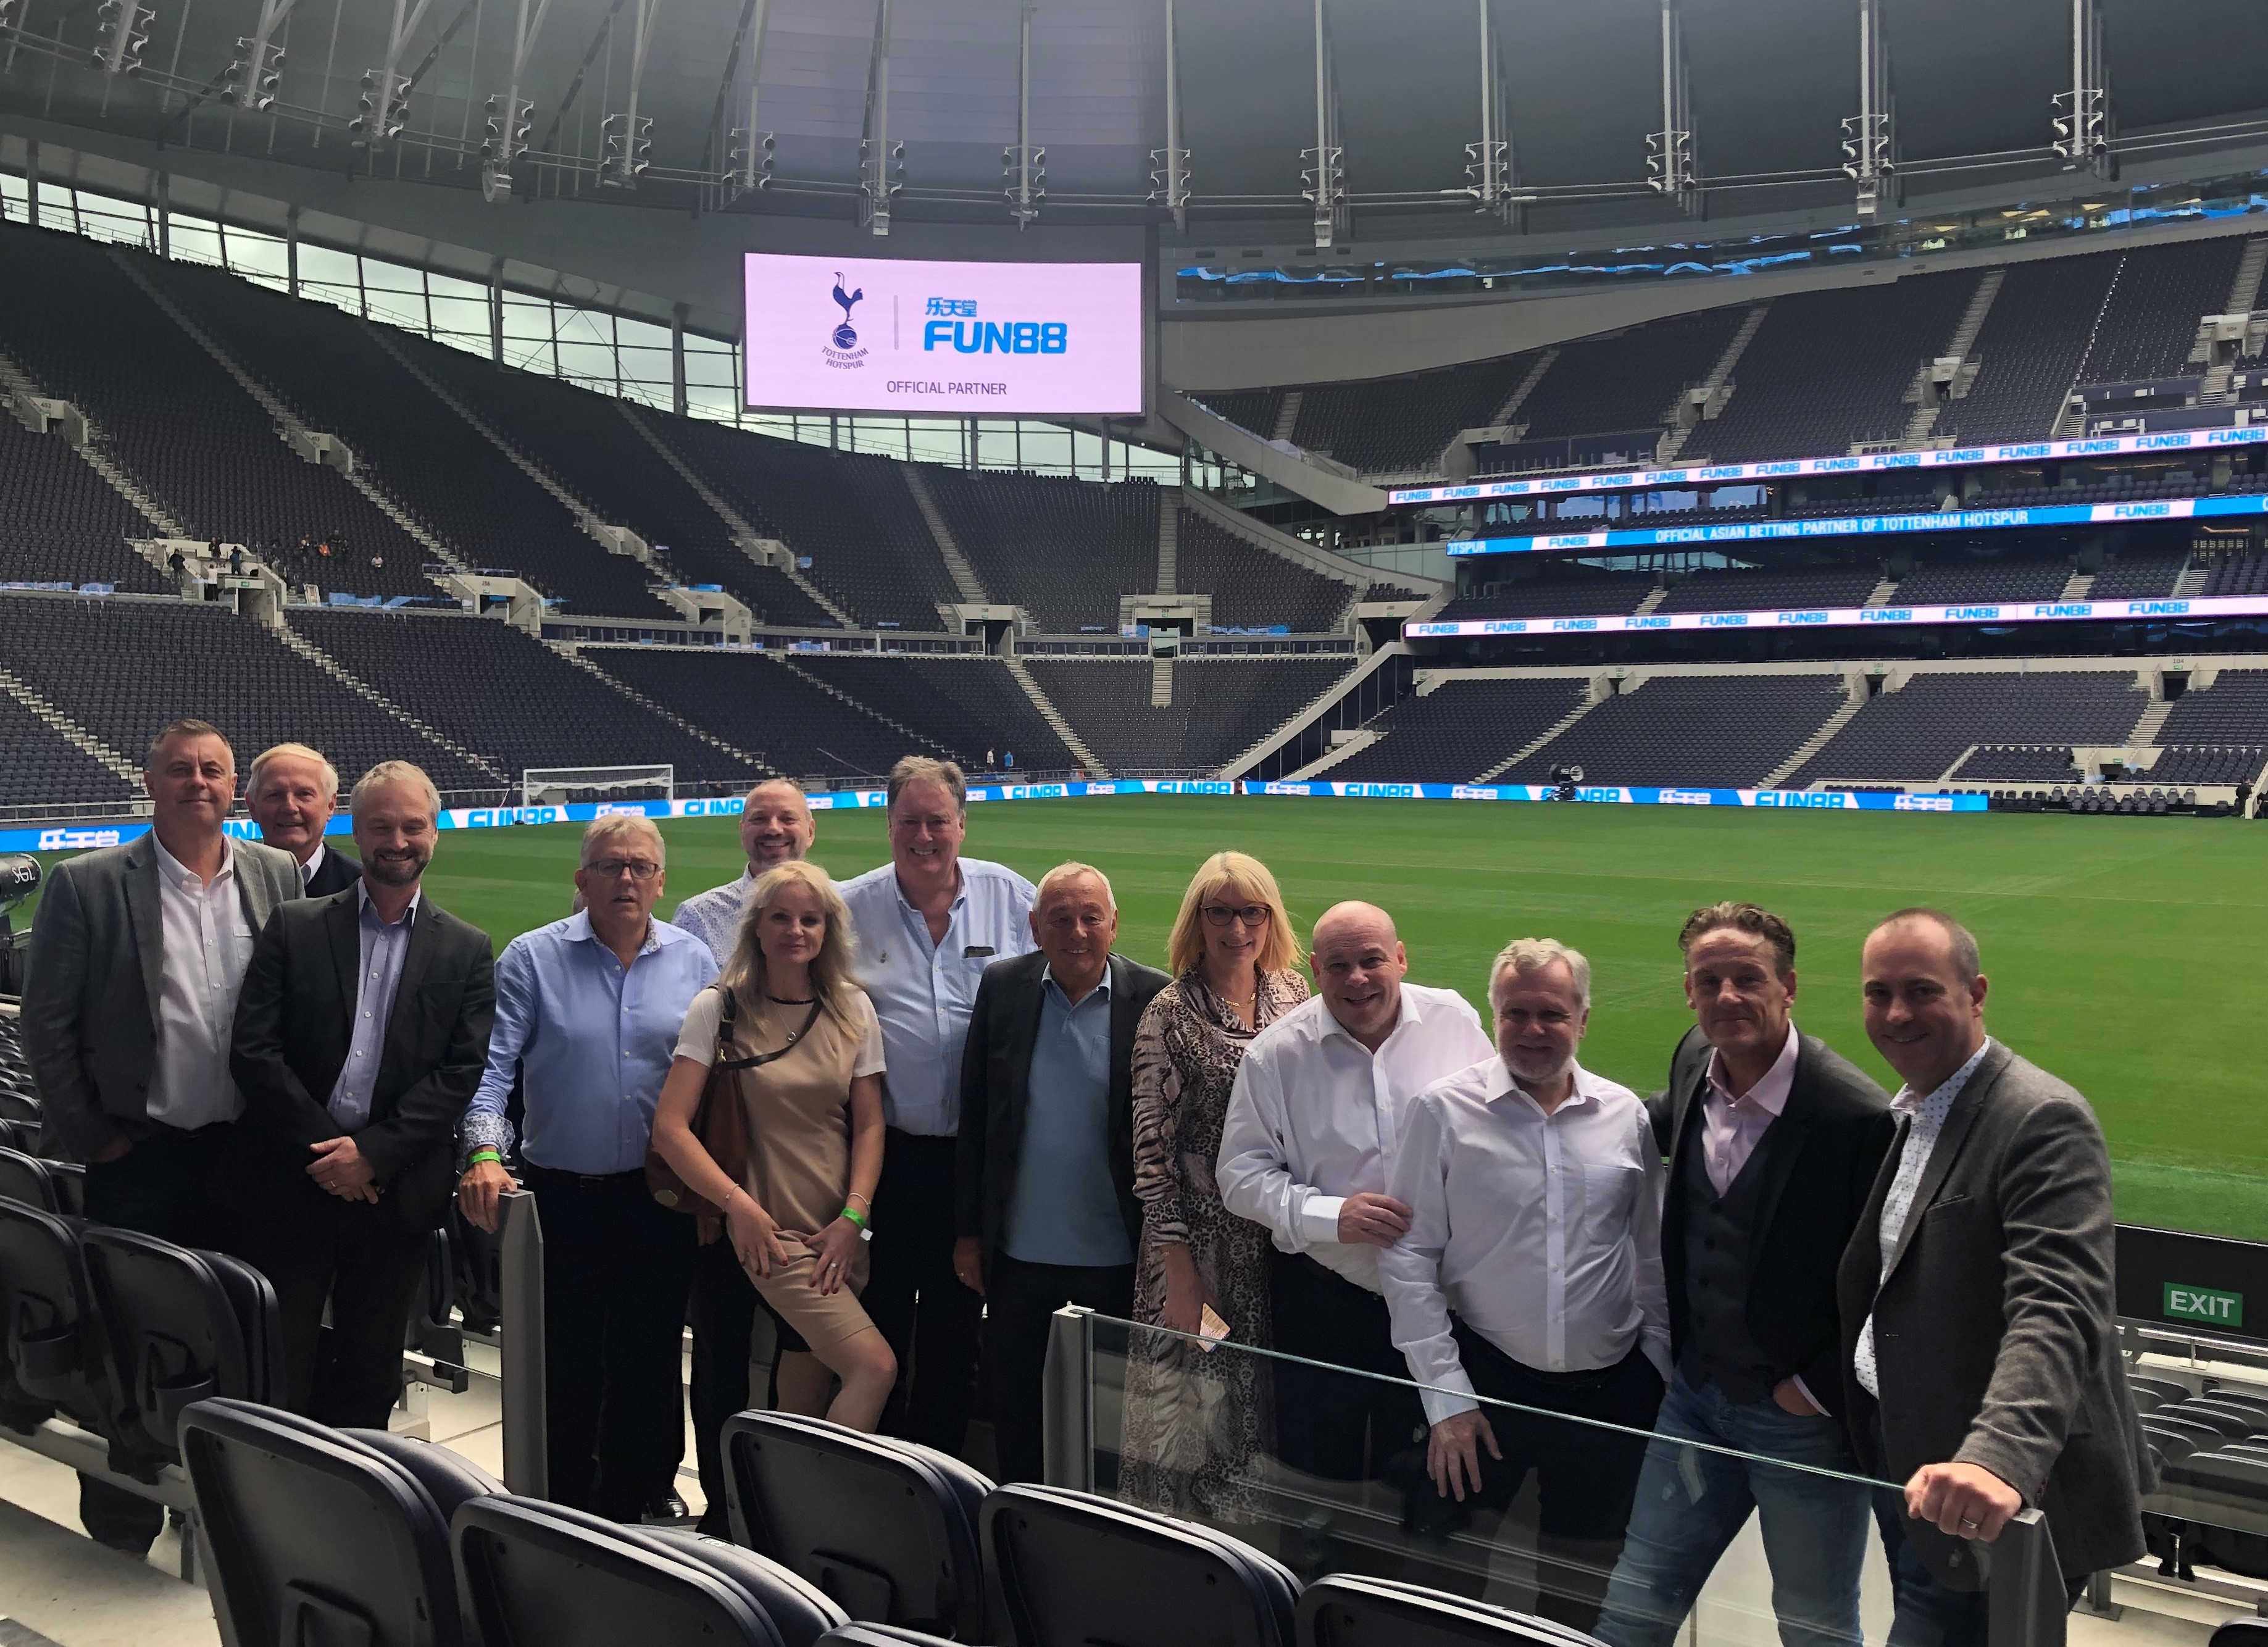 Above: As well as the Conference, attendees were treated to a 'behind the scenes' tour and also met with some of the Sours players.